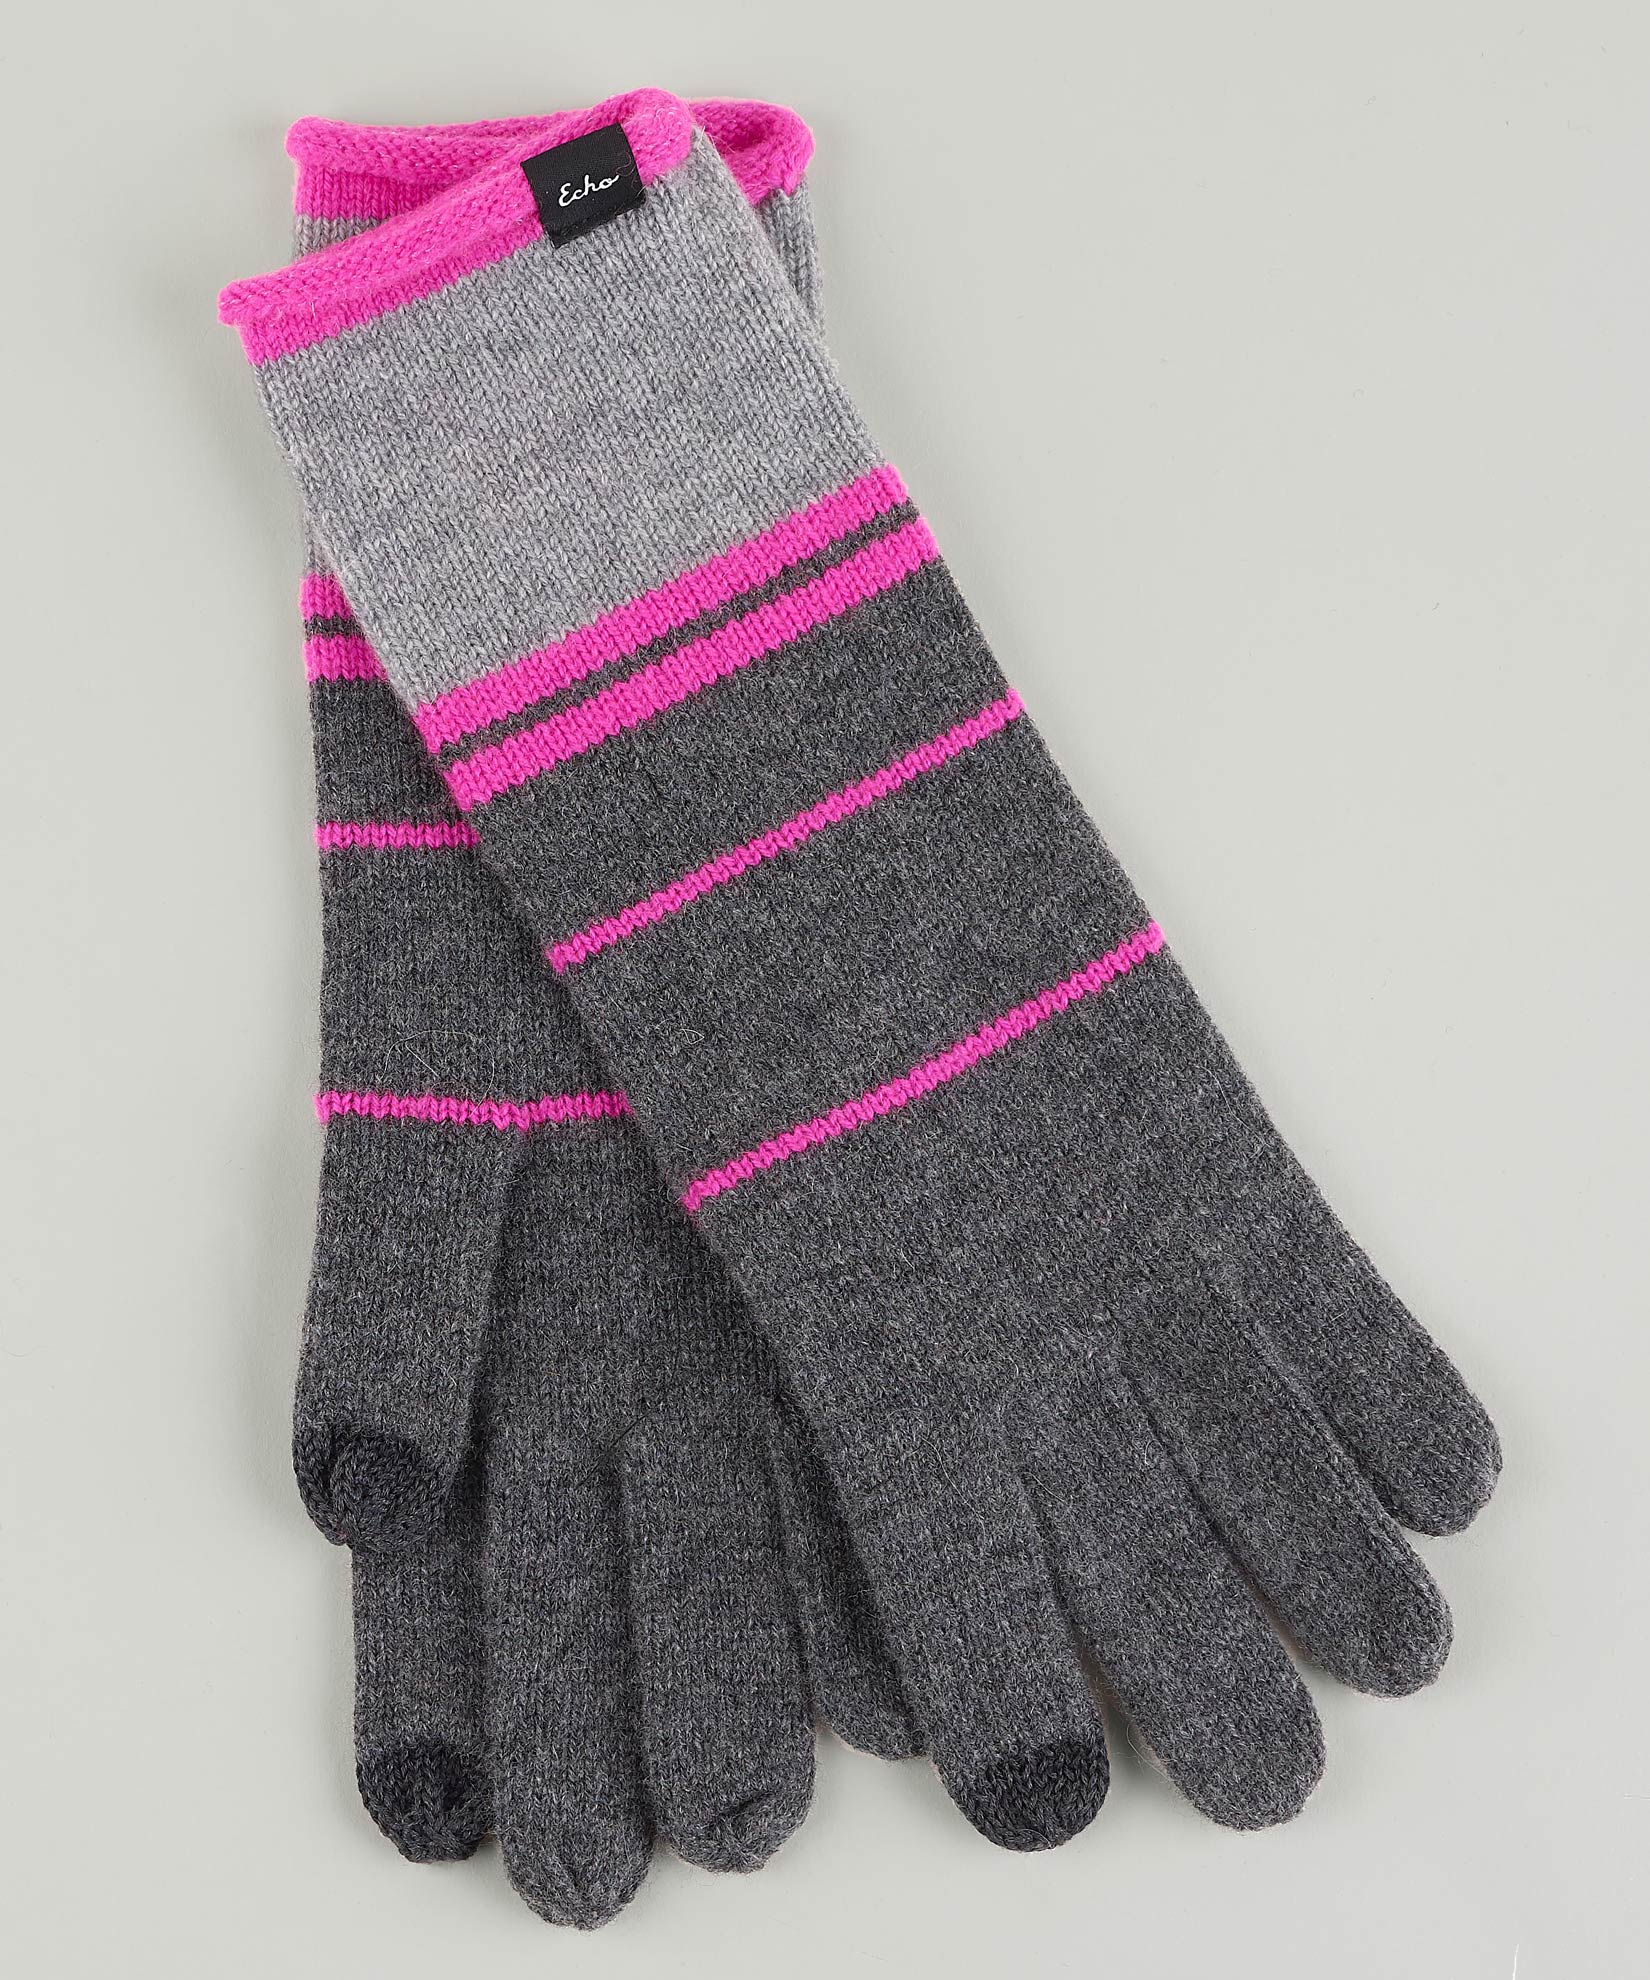 Echo Charcoal - Colorblock Cashmere Blend Luxe Glove